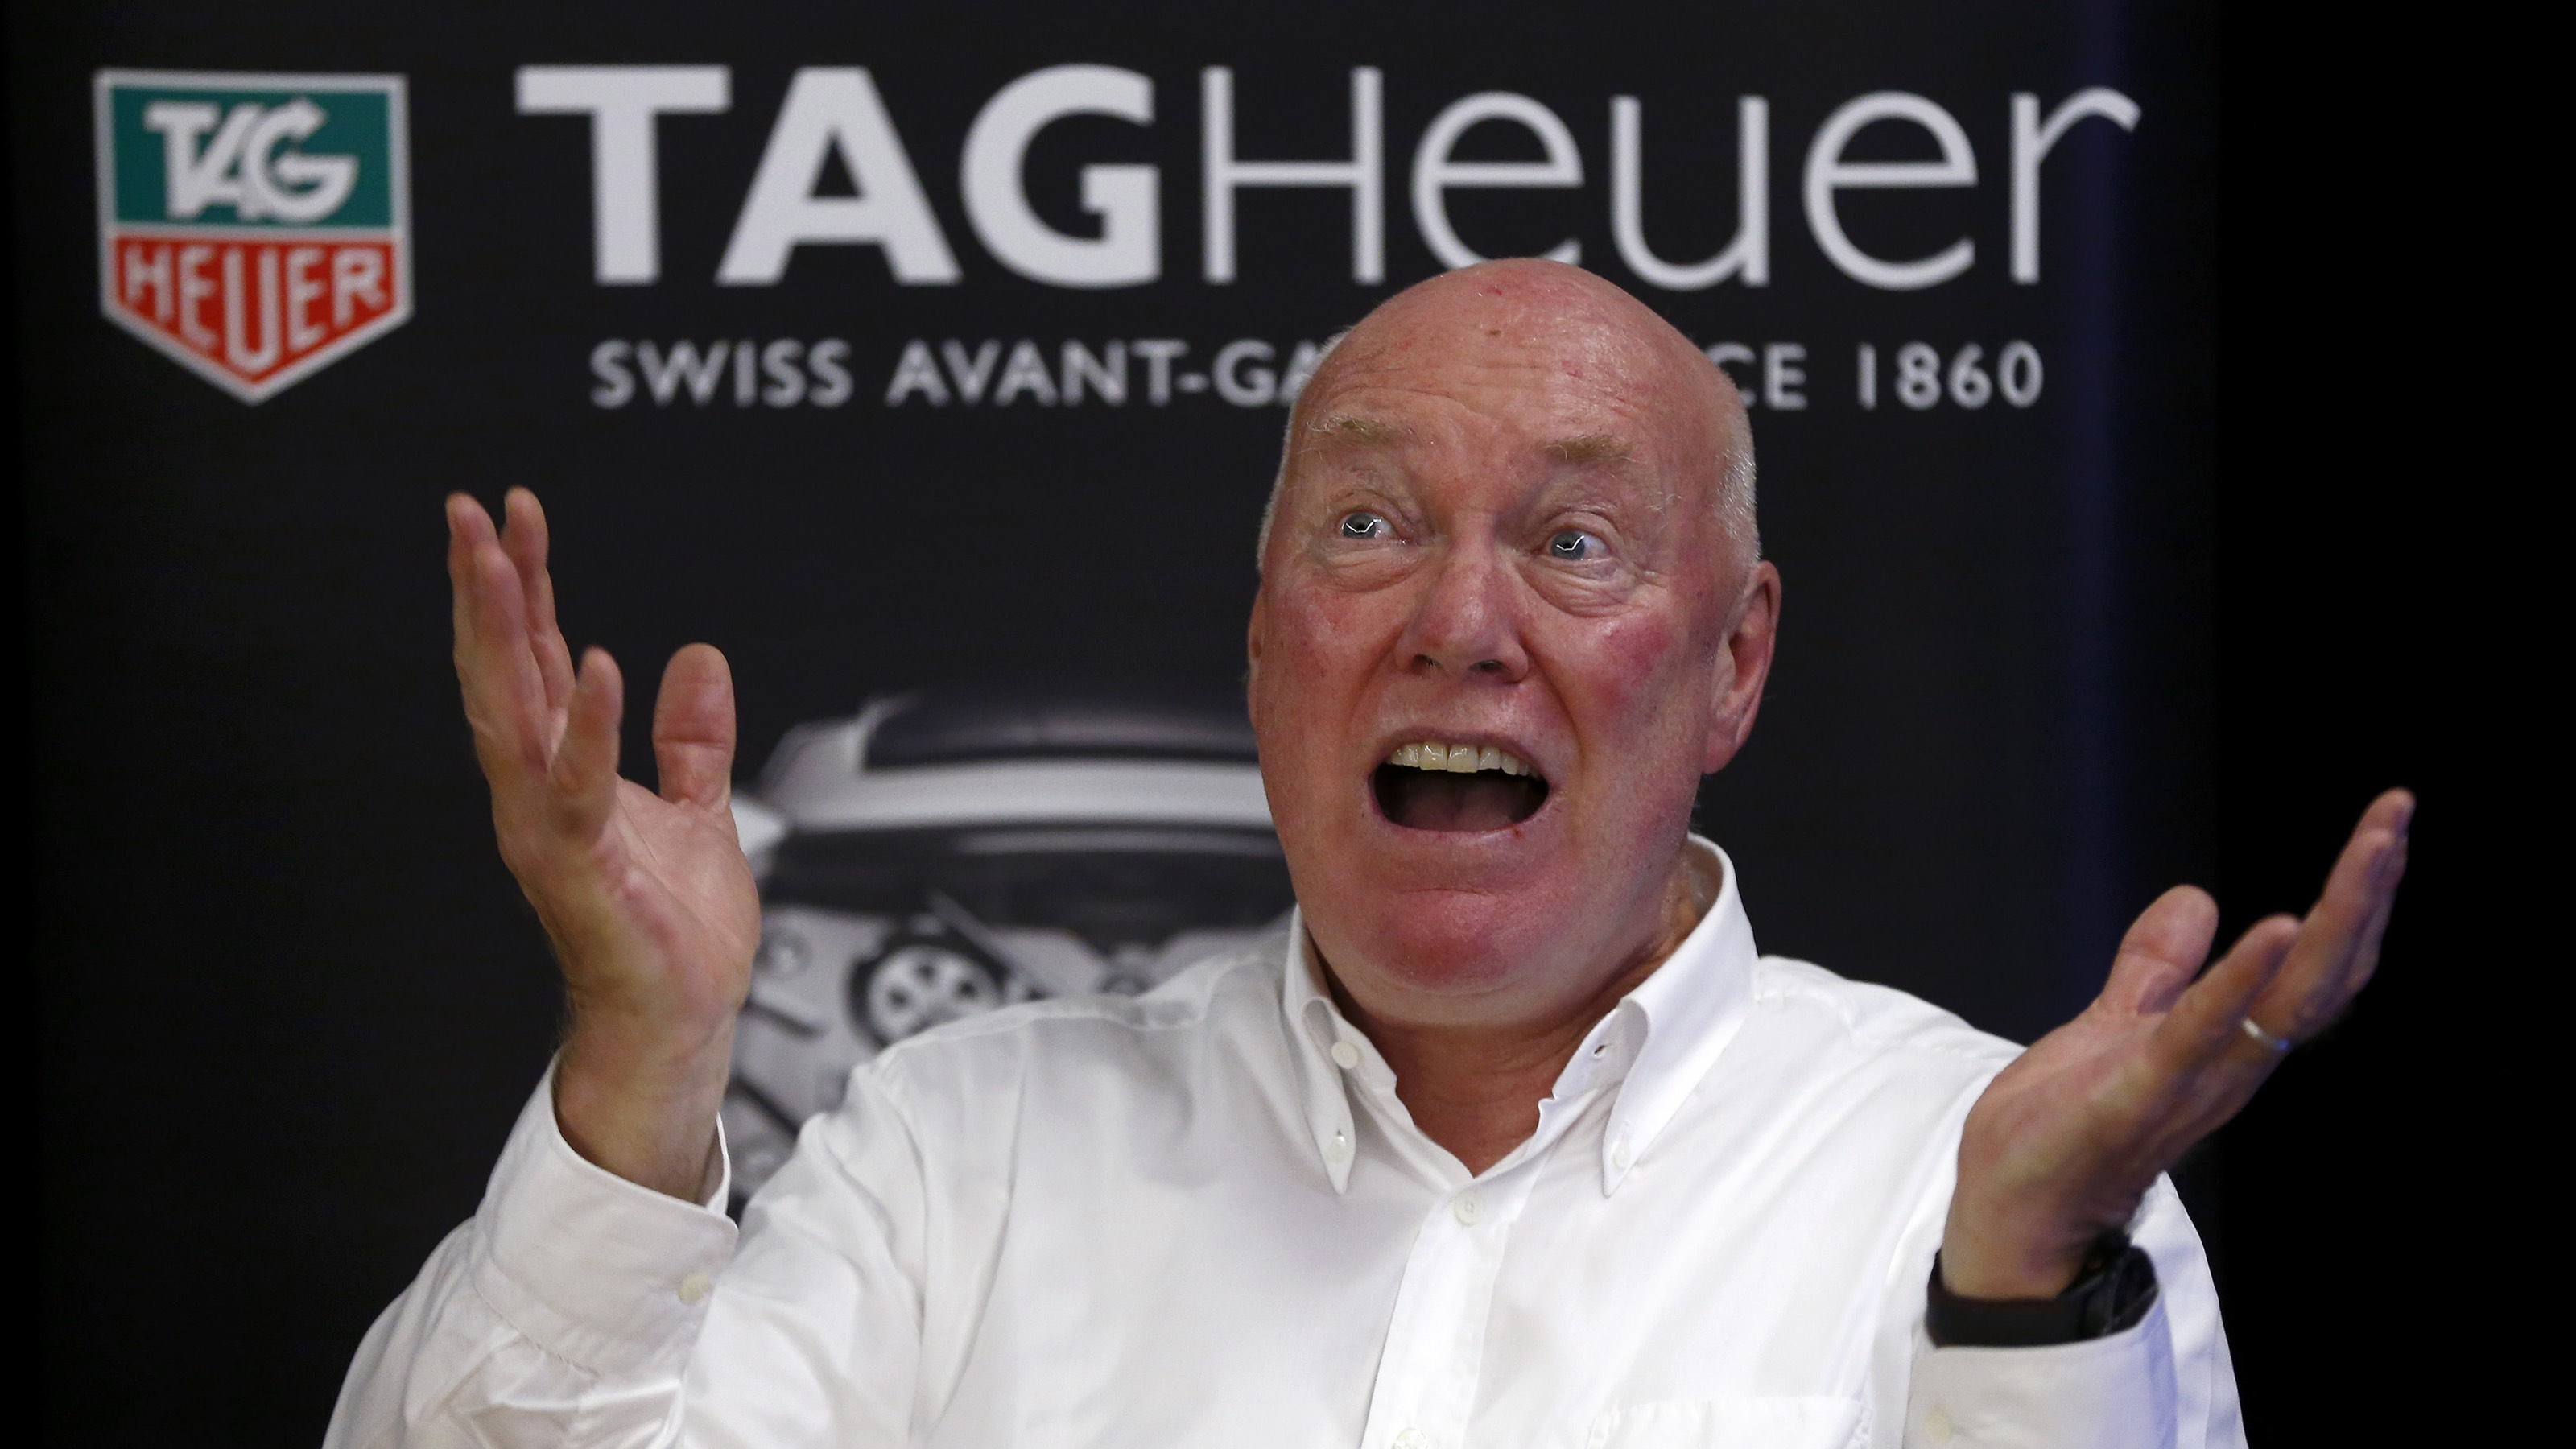 Jean-Claude Biver, head of French luxury goods group LVMH's watch business and interim CEO of the group's biggest watch brand, TAG Heuer, addresses a news conference in the western Swiss town La Chaux-de-Fonds December 16, 2014. REUTERS/Arnd Wiegmann